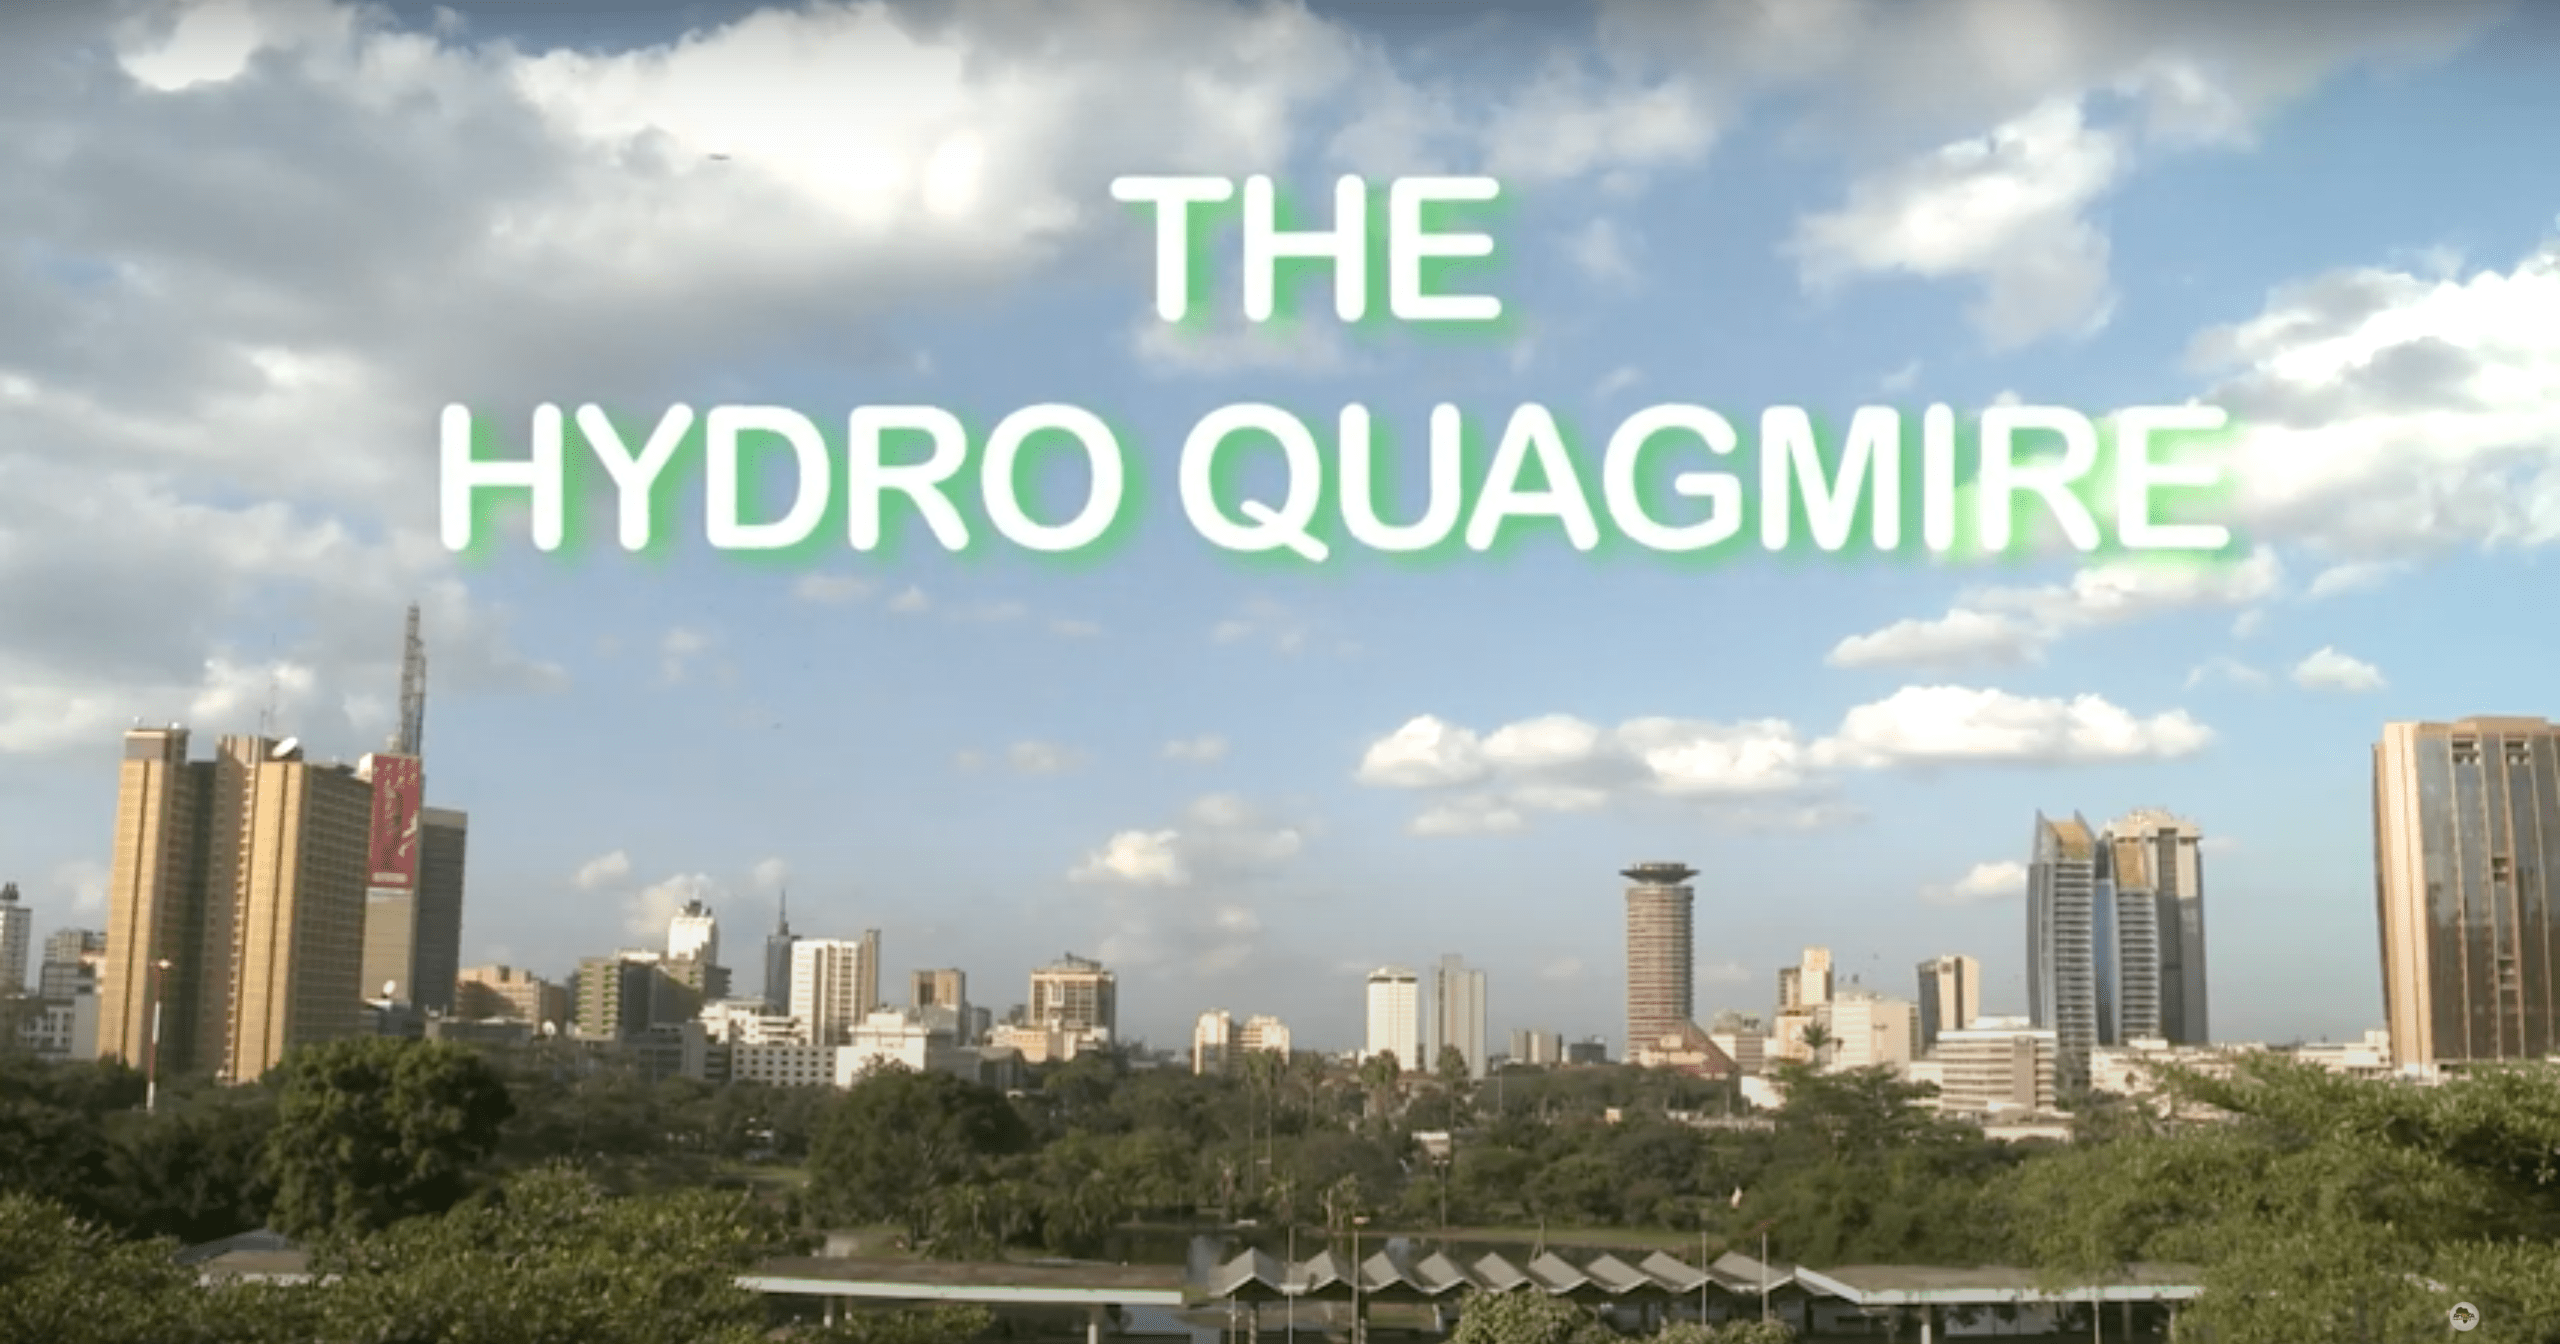 The Hydro Quagmire: Cartels cut into pipes, hinder access to water in Kenya's Mathare slum